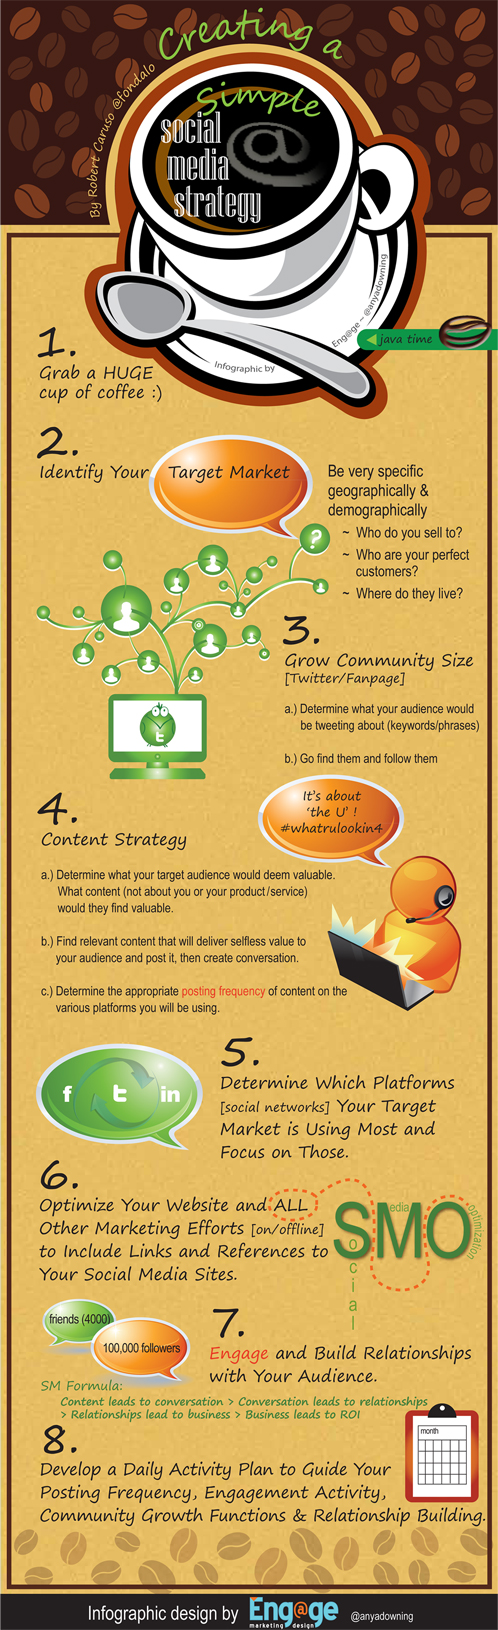 Creating a Simple Social Media Strategy resized 600